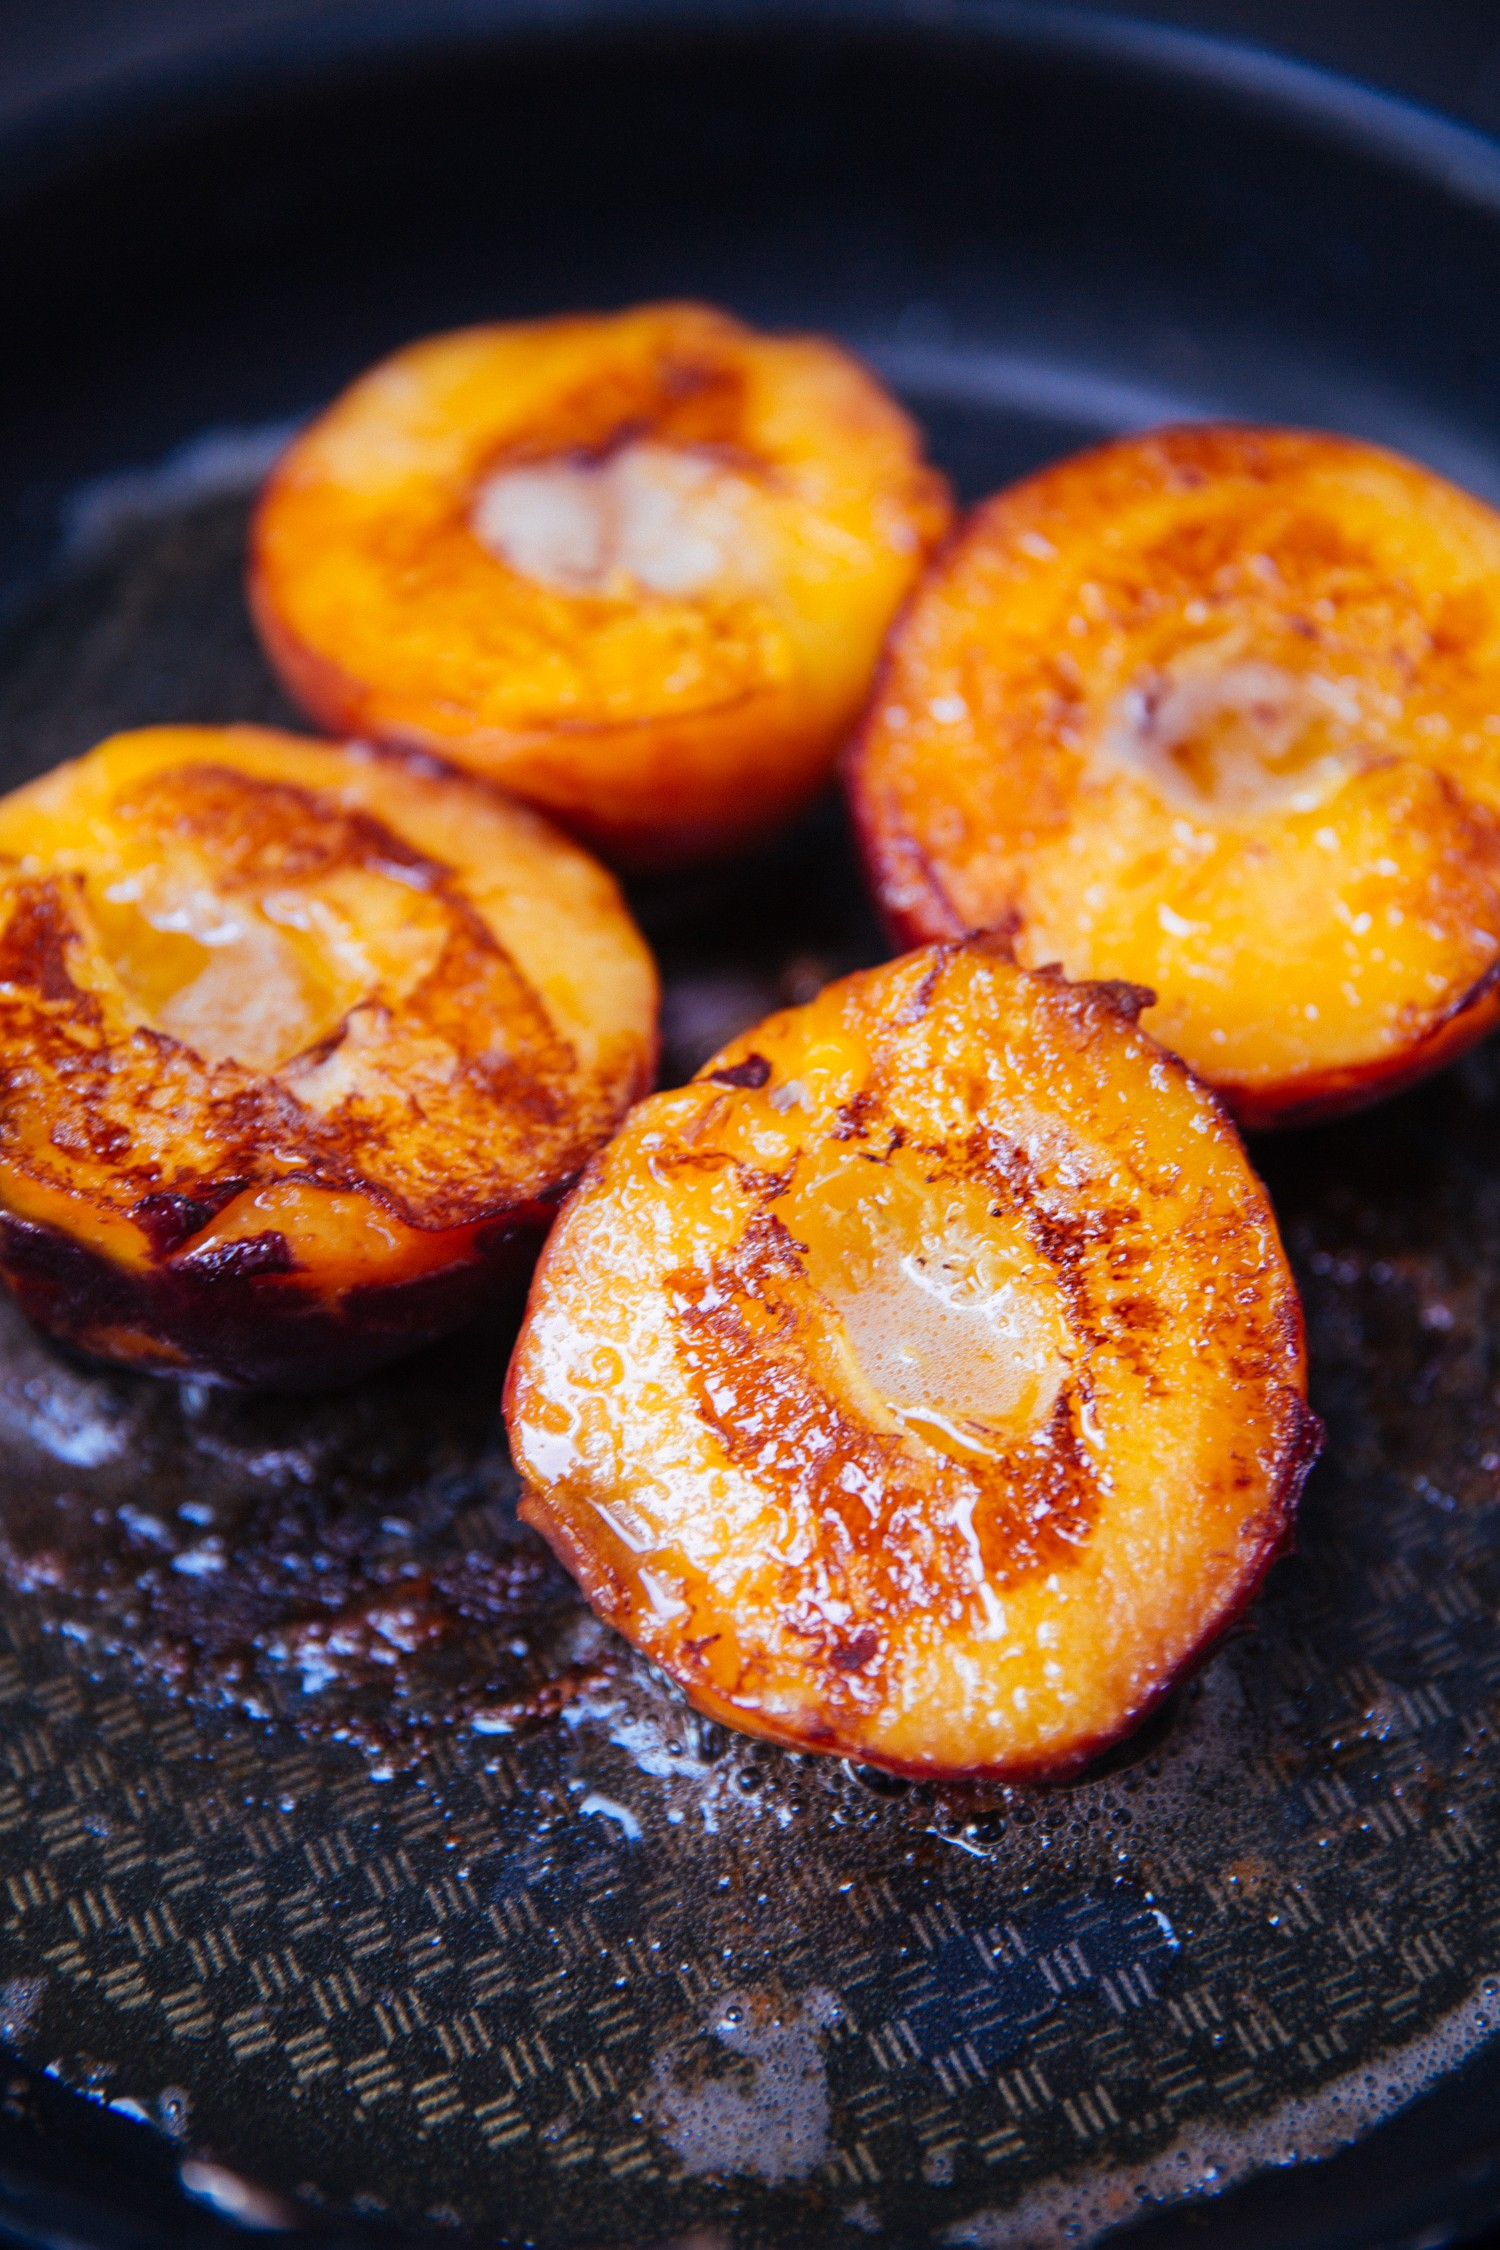 Fried peaches